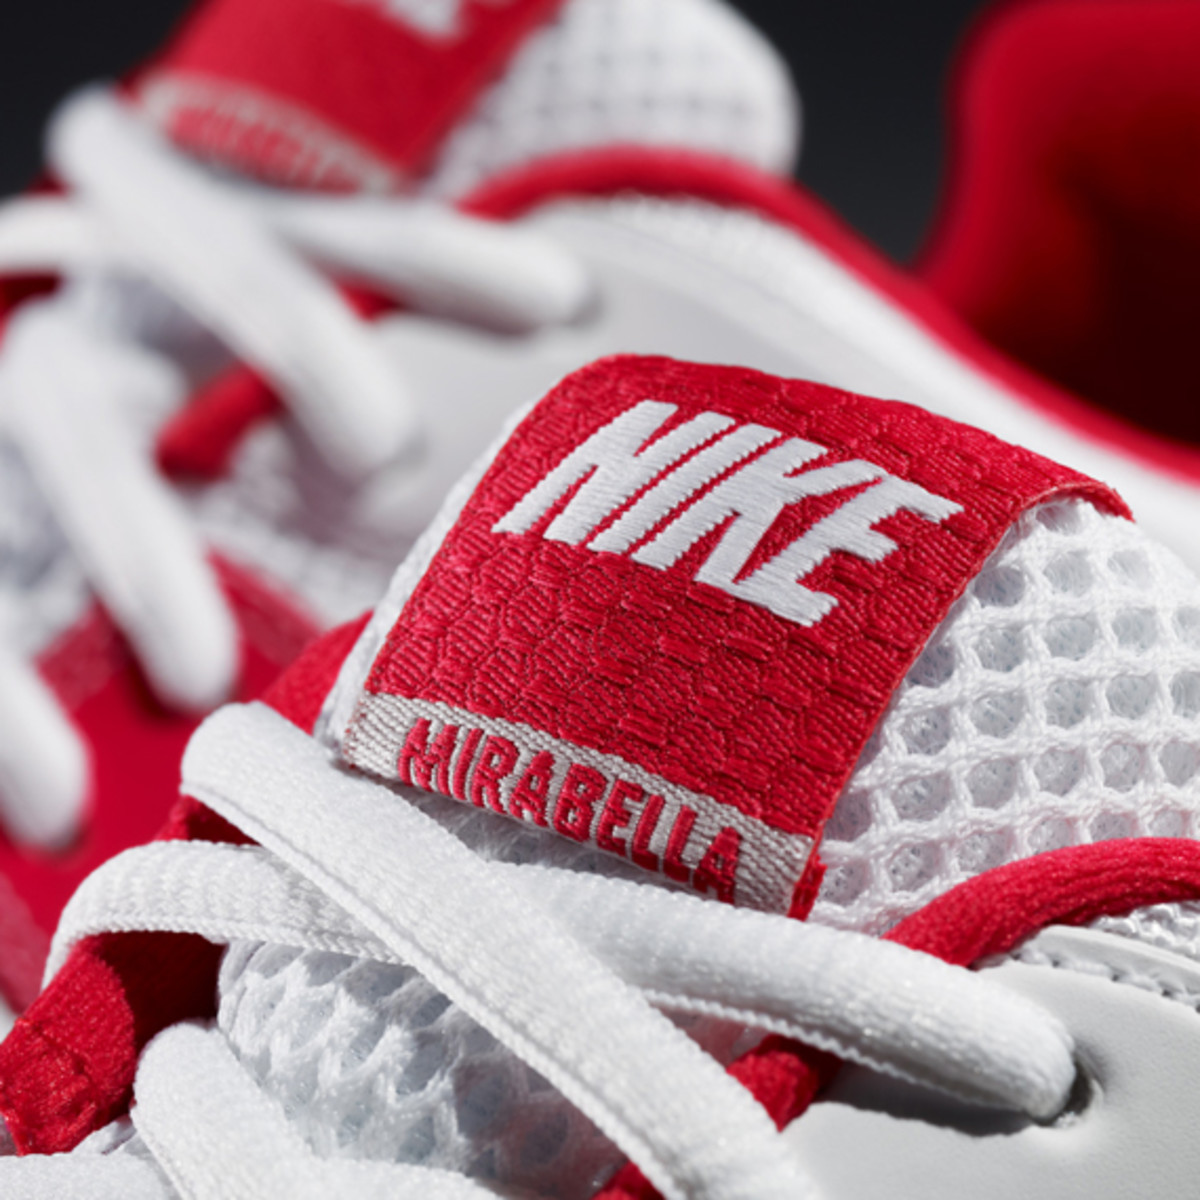 nike-women-air-max-mirabella-3-serena-williams-02